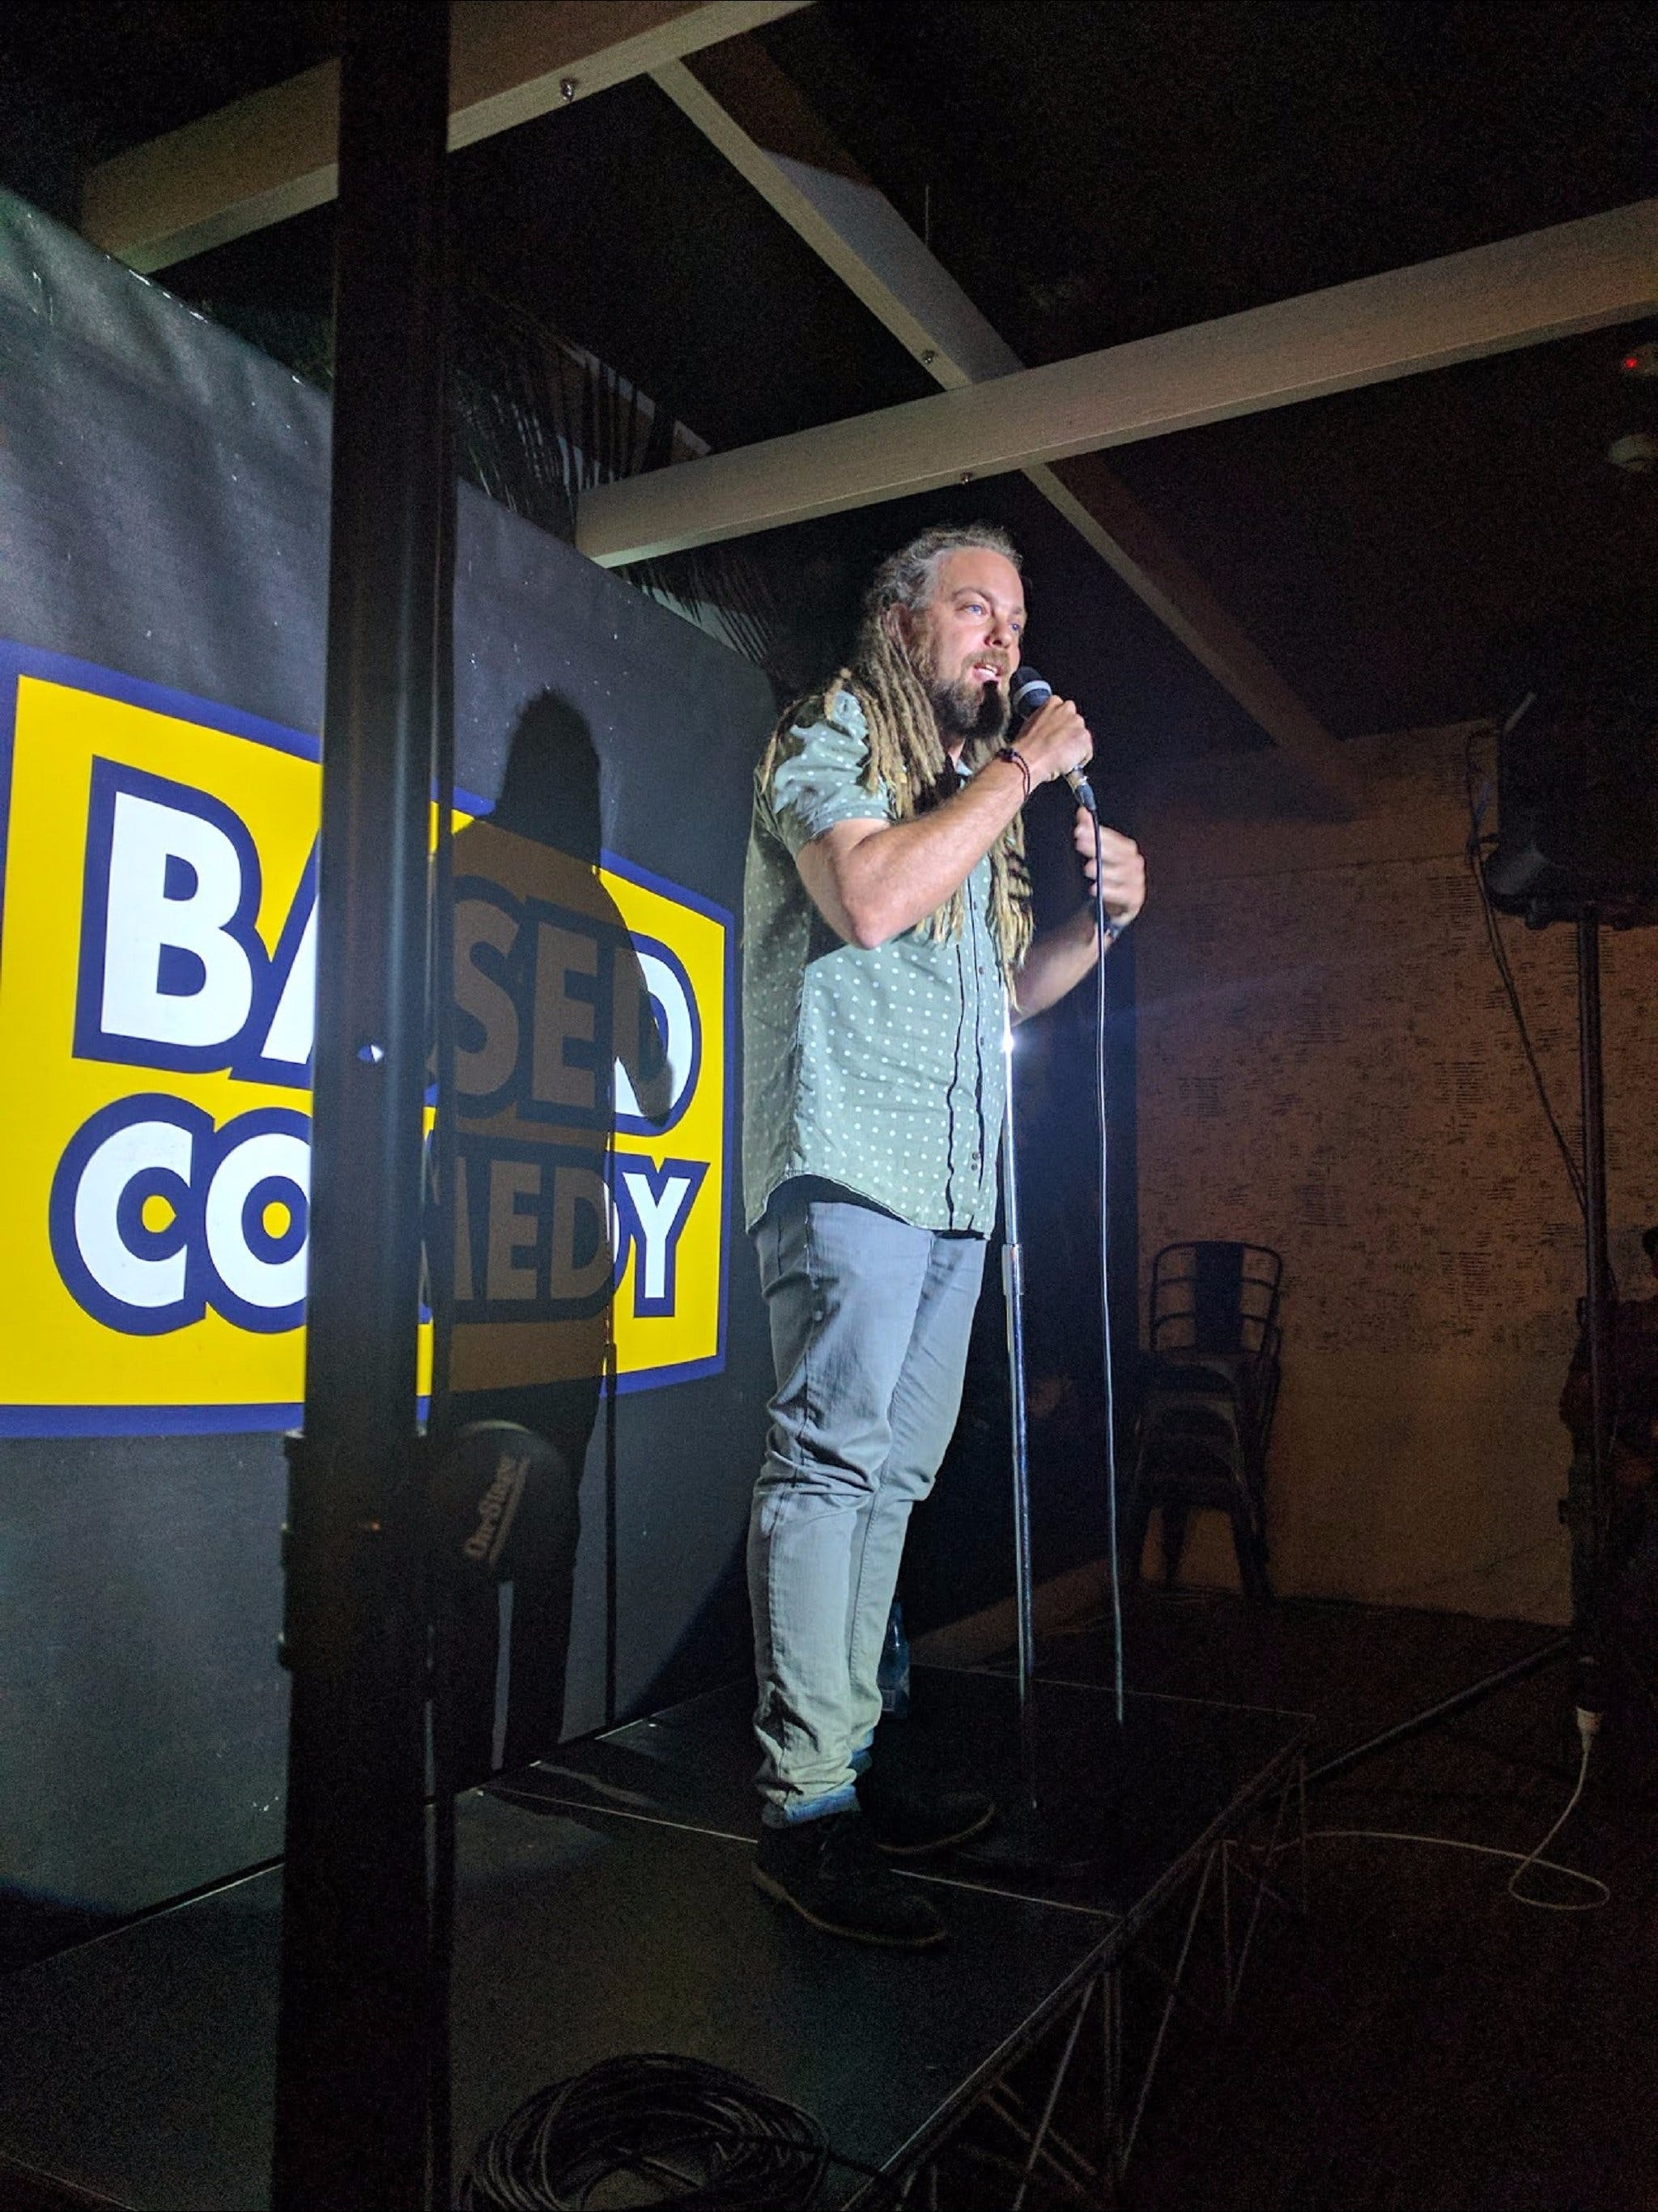 Based Comedy at The Palm Beach Hotel - Wagga Wagga Accommodation